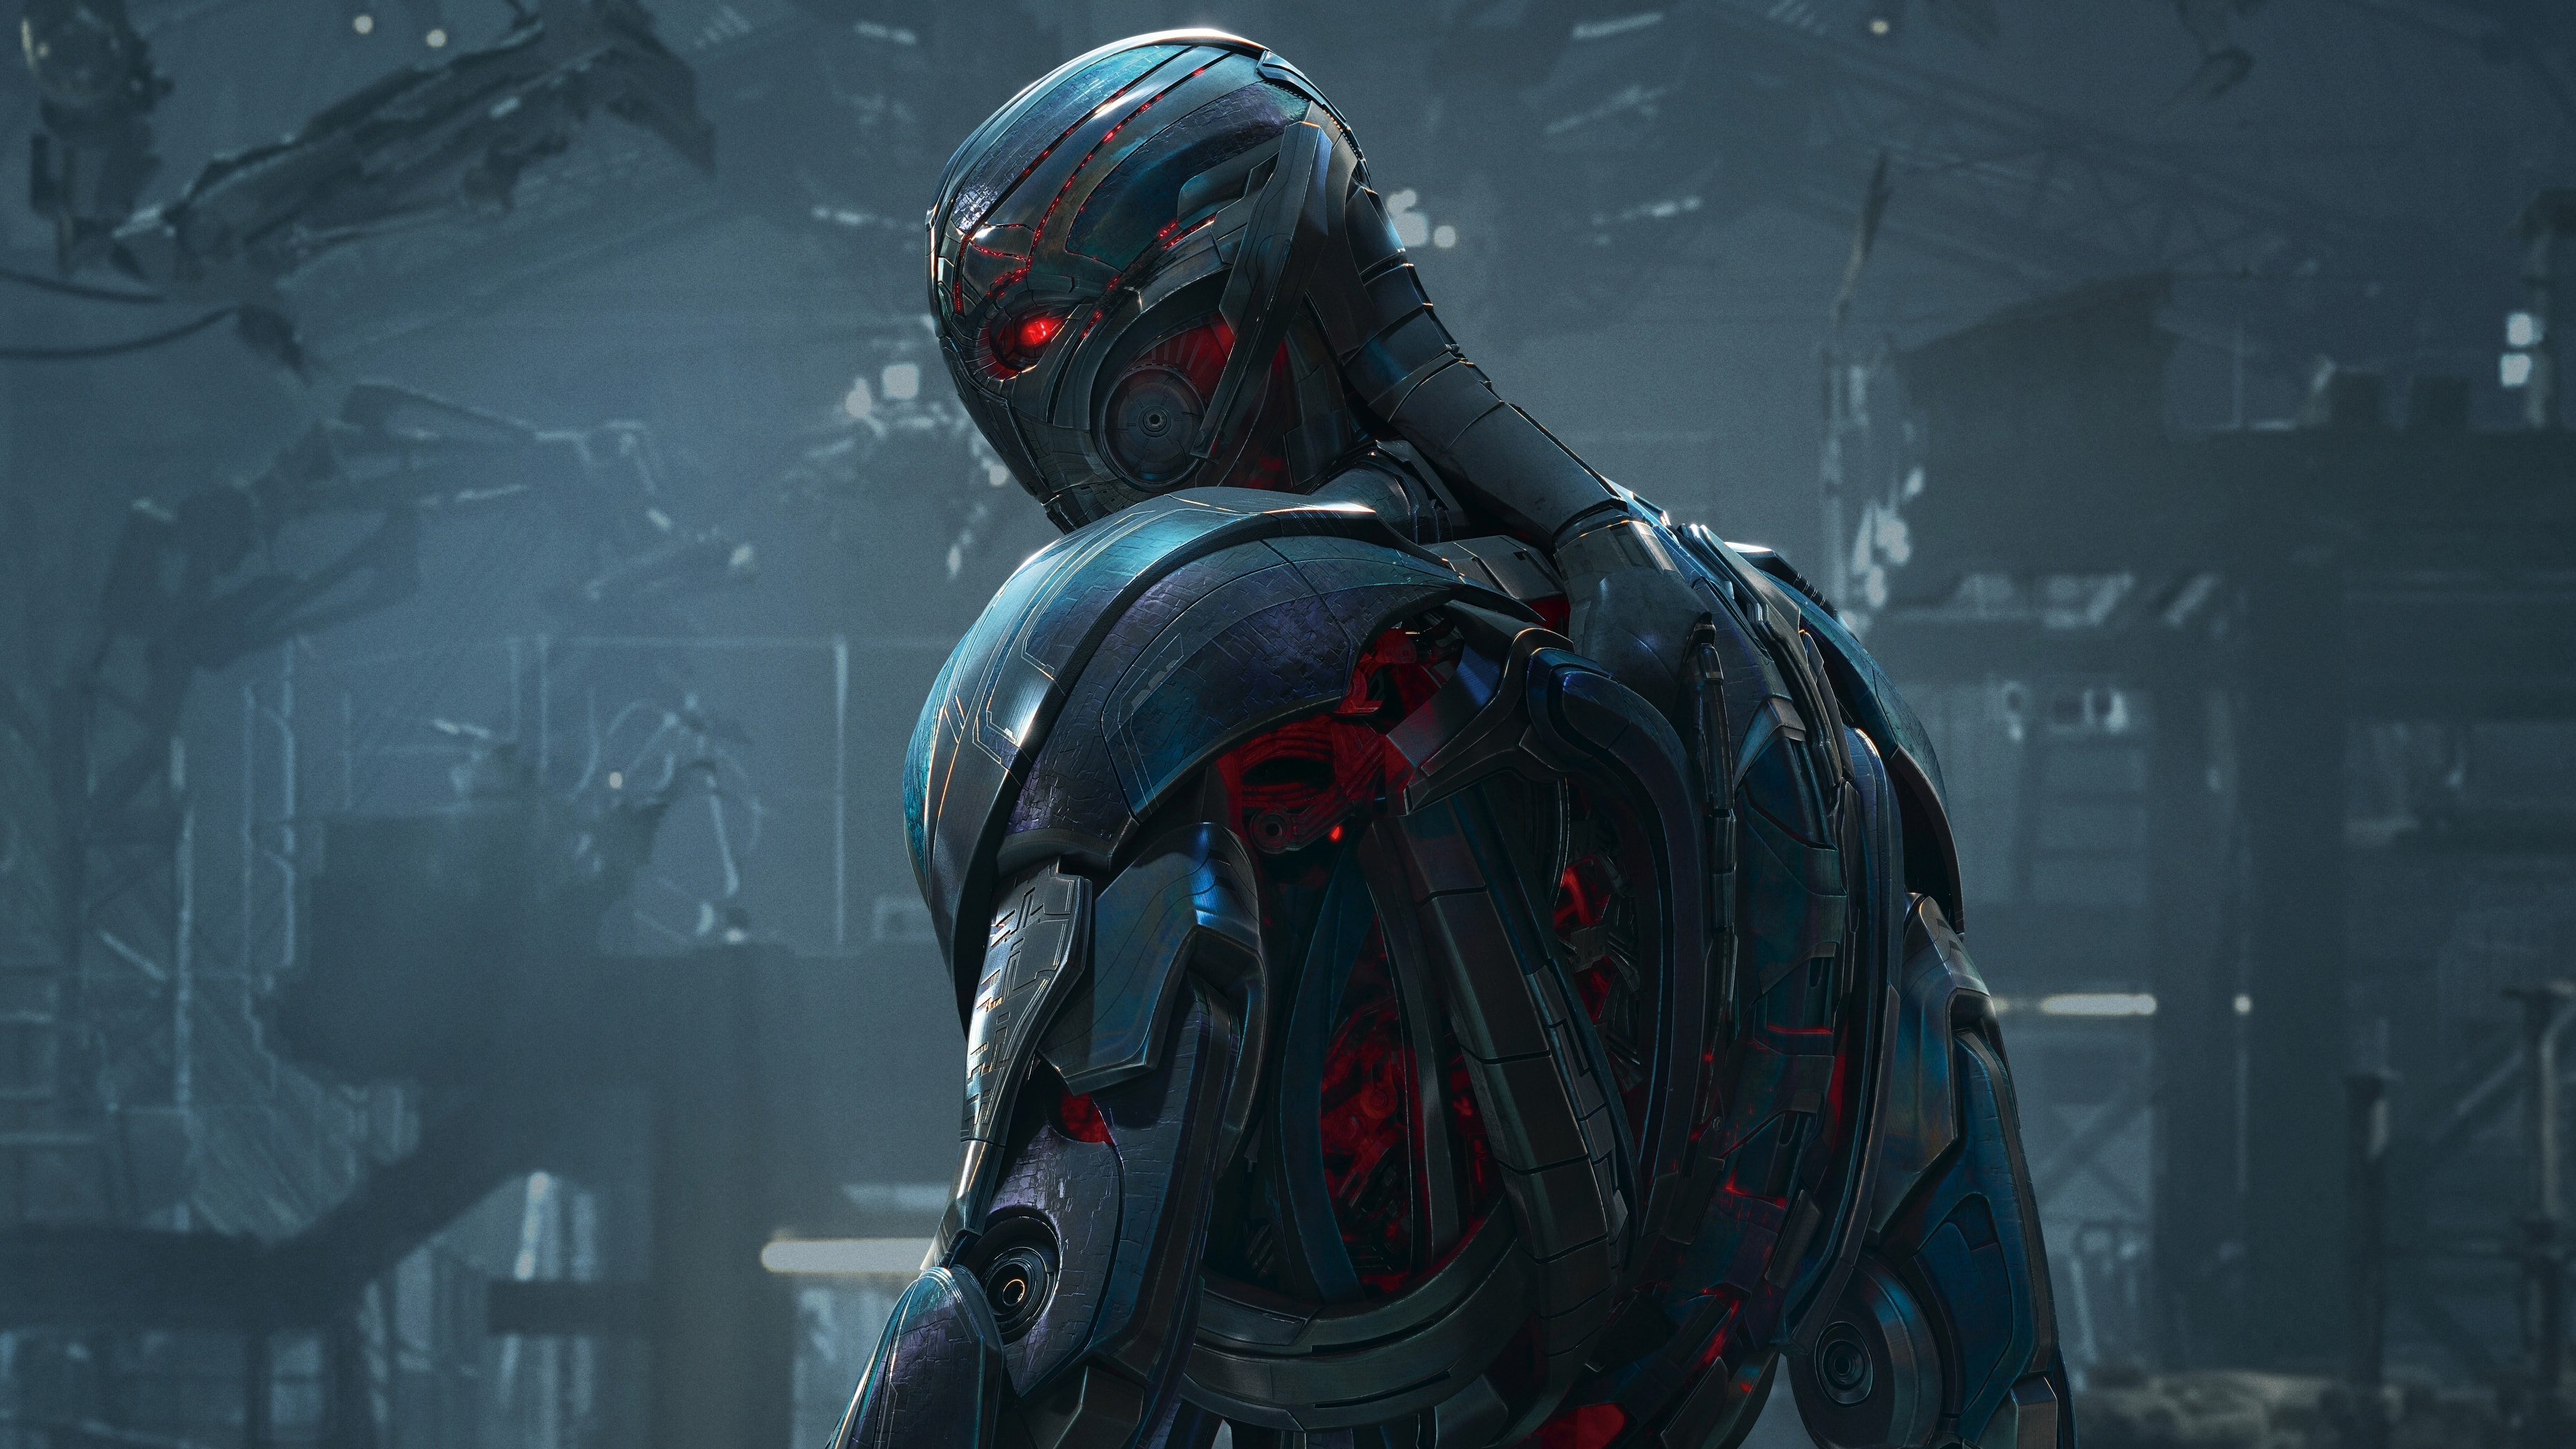 Avengers Age Of Ultron Hd Wallpapers 7wallpapers Net